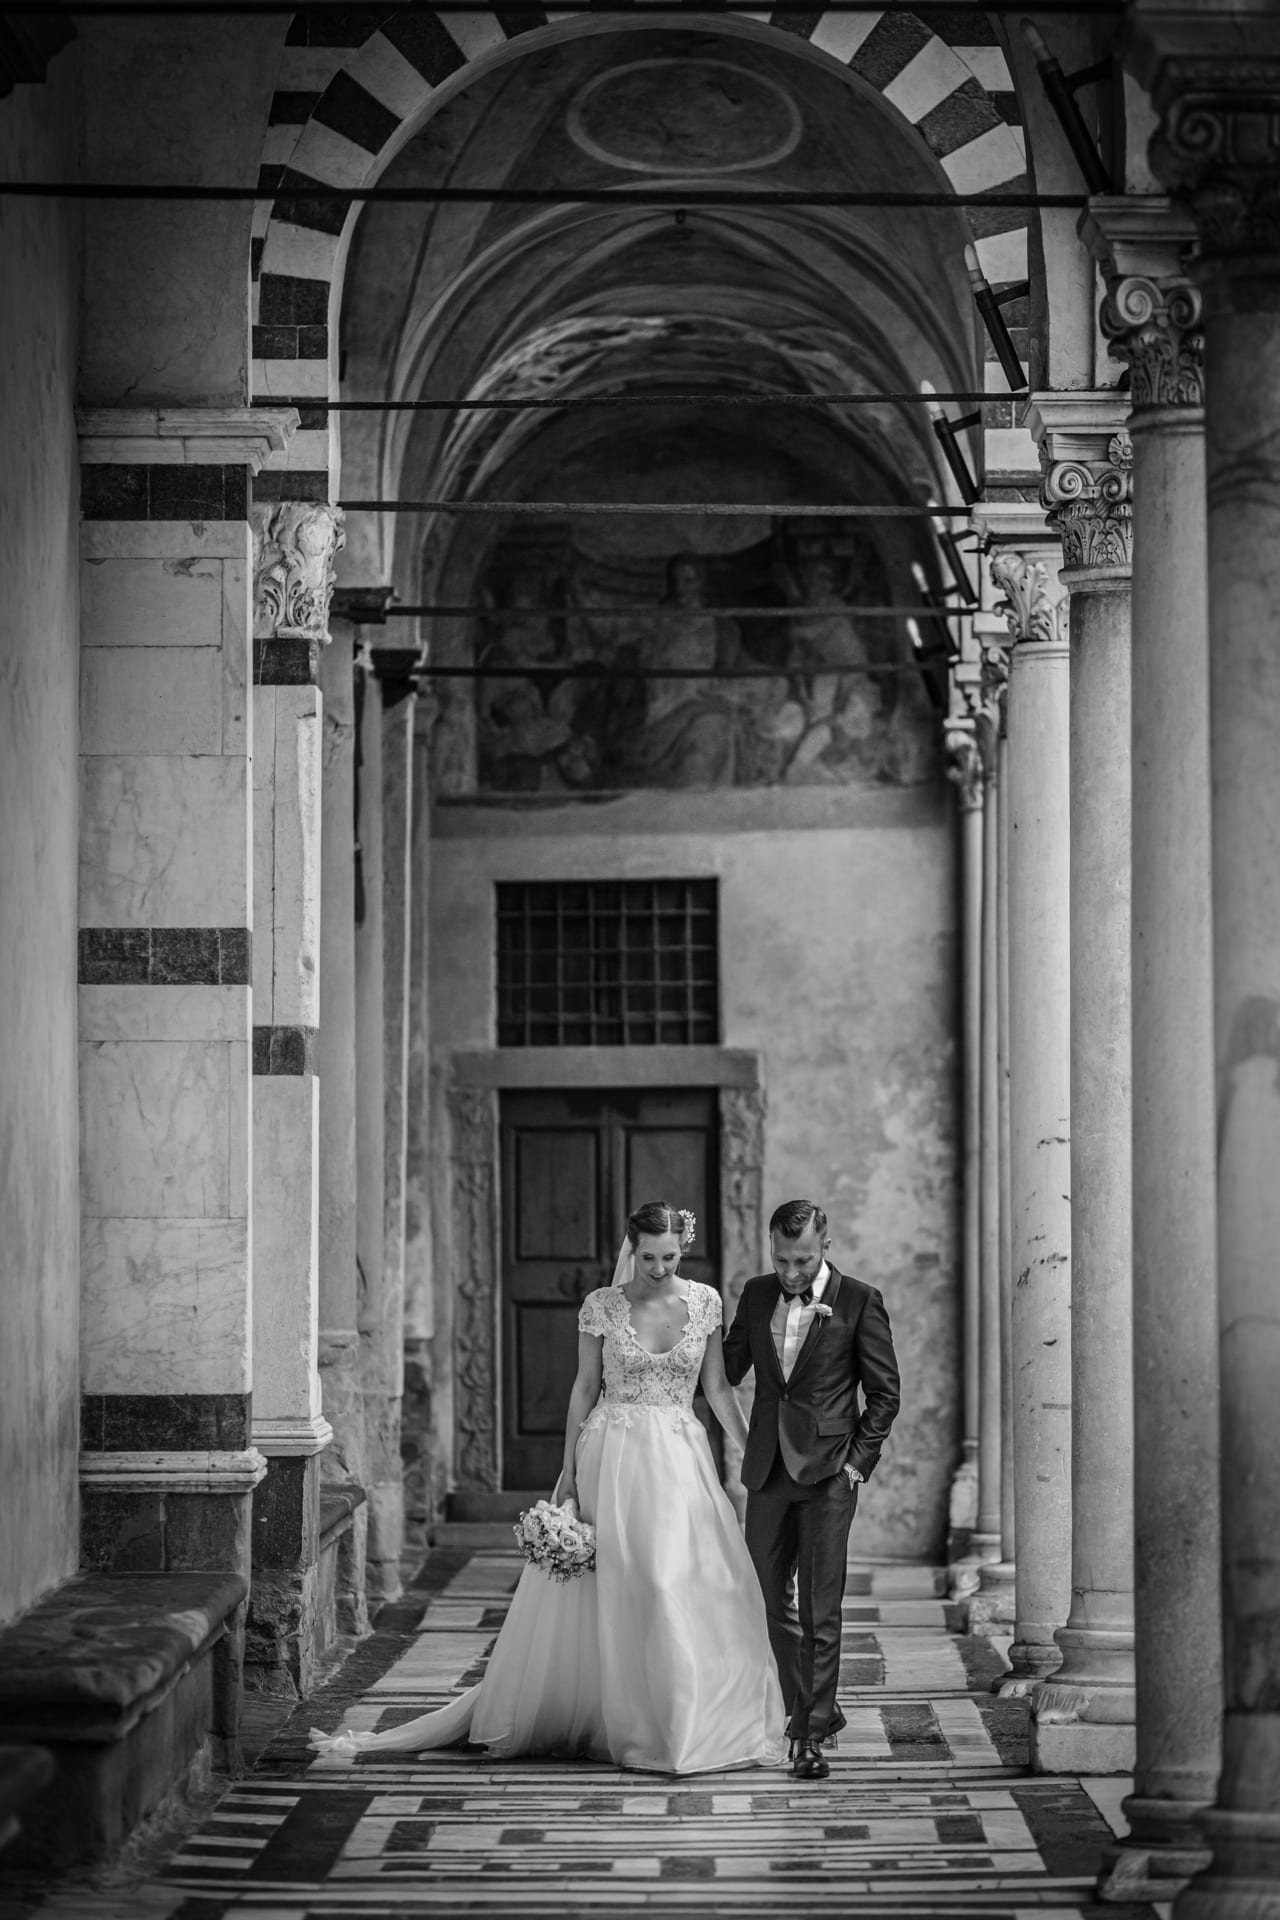 https://s3-eu-central-1.amazonaws.com/righiphotography-com/wp-content/uploads/2020/02/02183159/Wedding-Photo-No-Pose-Studio-Fotografico-Righi-RIGHI-36.jpg